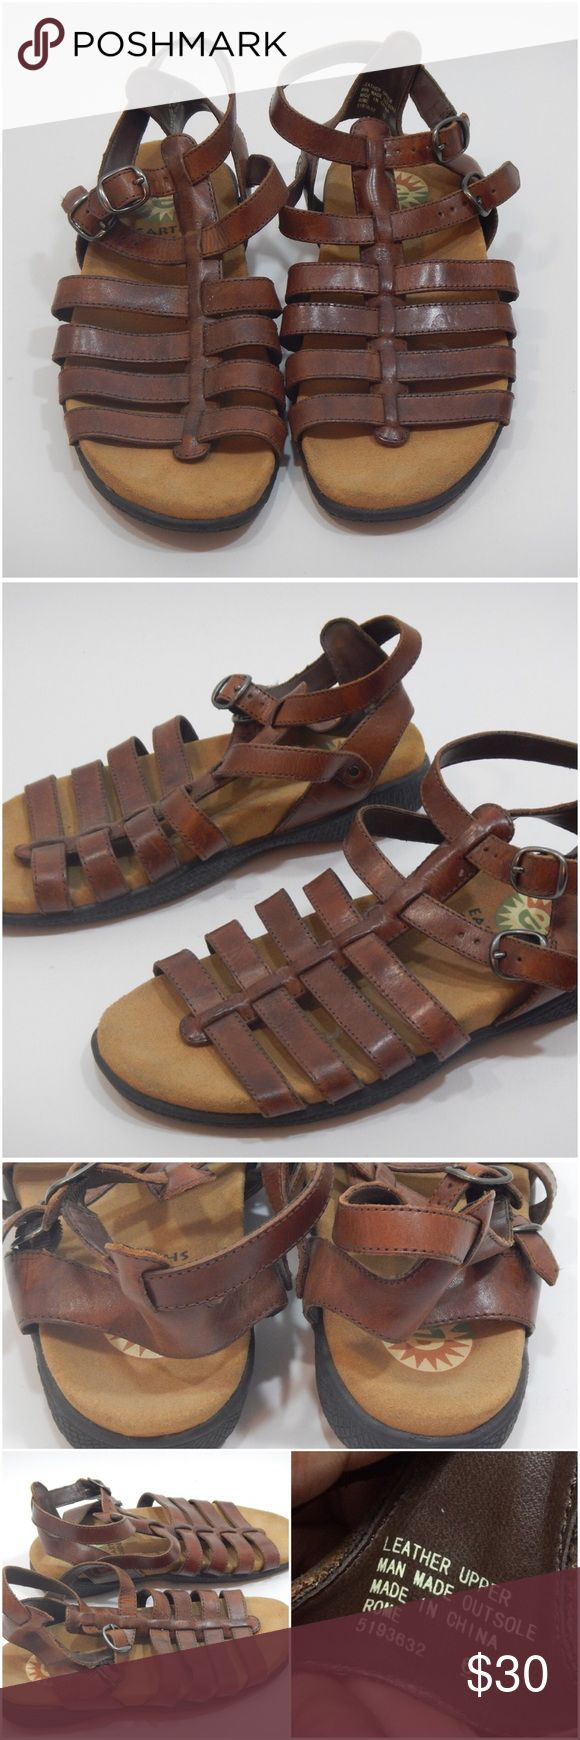 Brown ankle strap leather sandals - Earth shoe Brown ankle strap leather sandals. Preloved with minor signs of wear. Earth Shoe Shoes Sandals